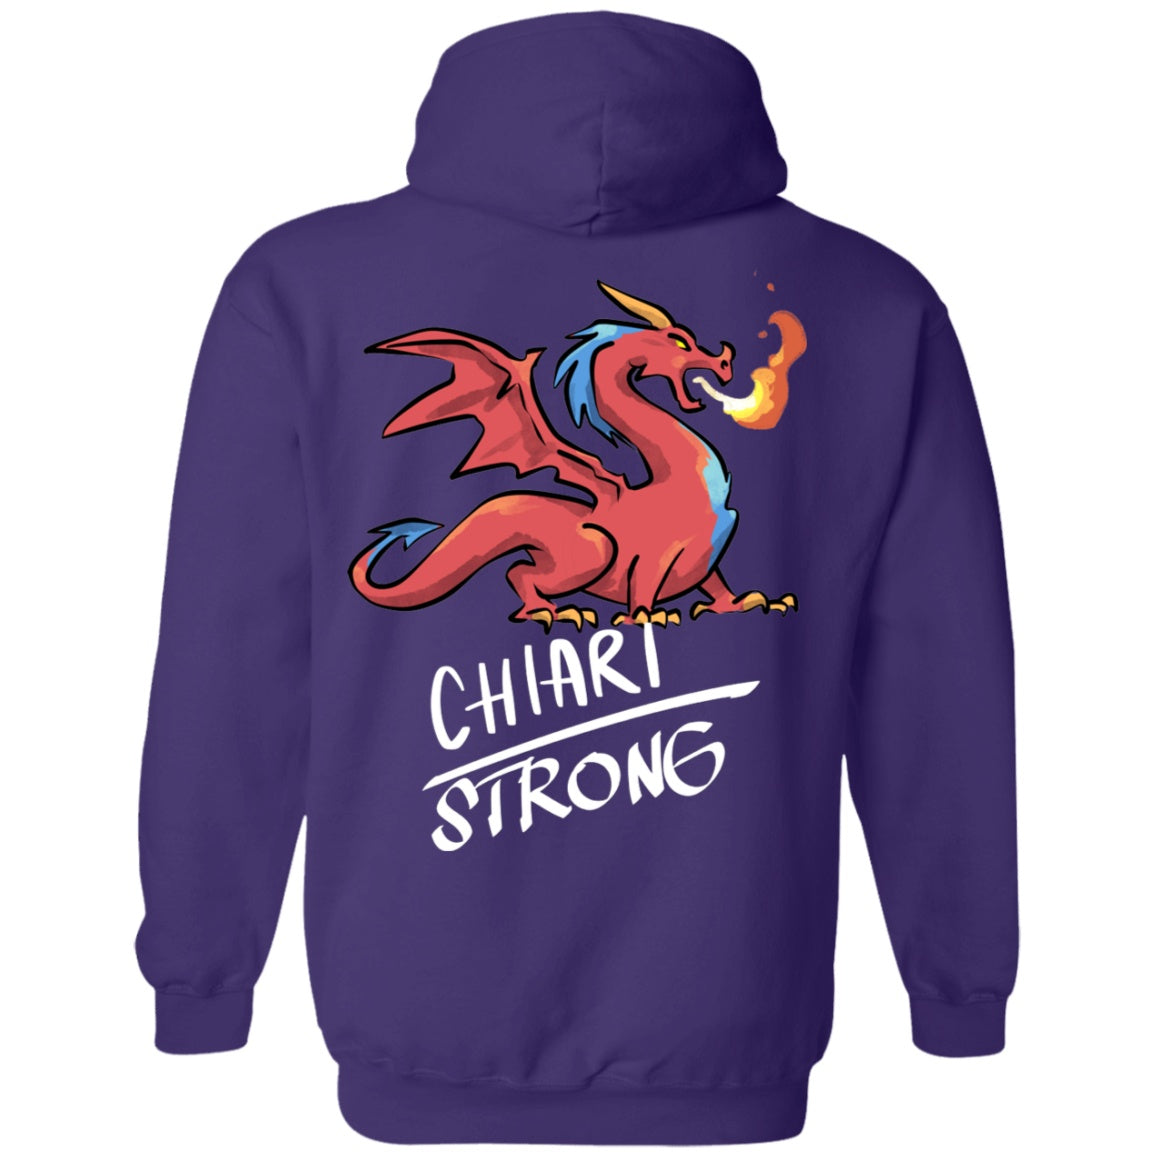 Chiari Strong Dragon Pullover Hoodie 8 oz. - The Unchargeables